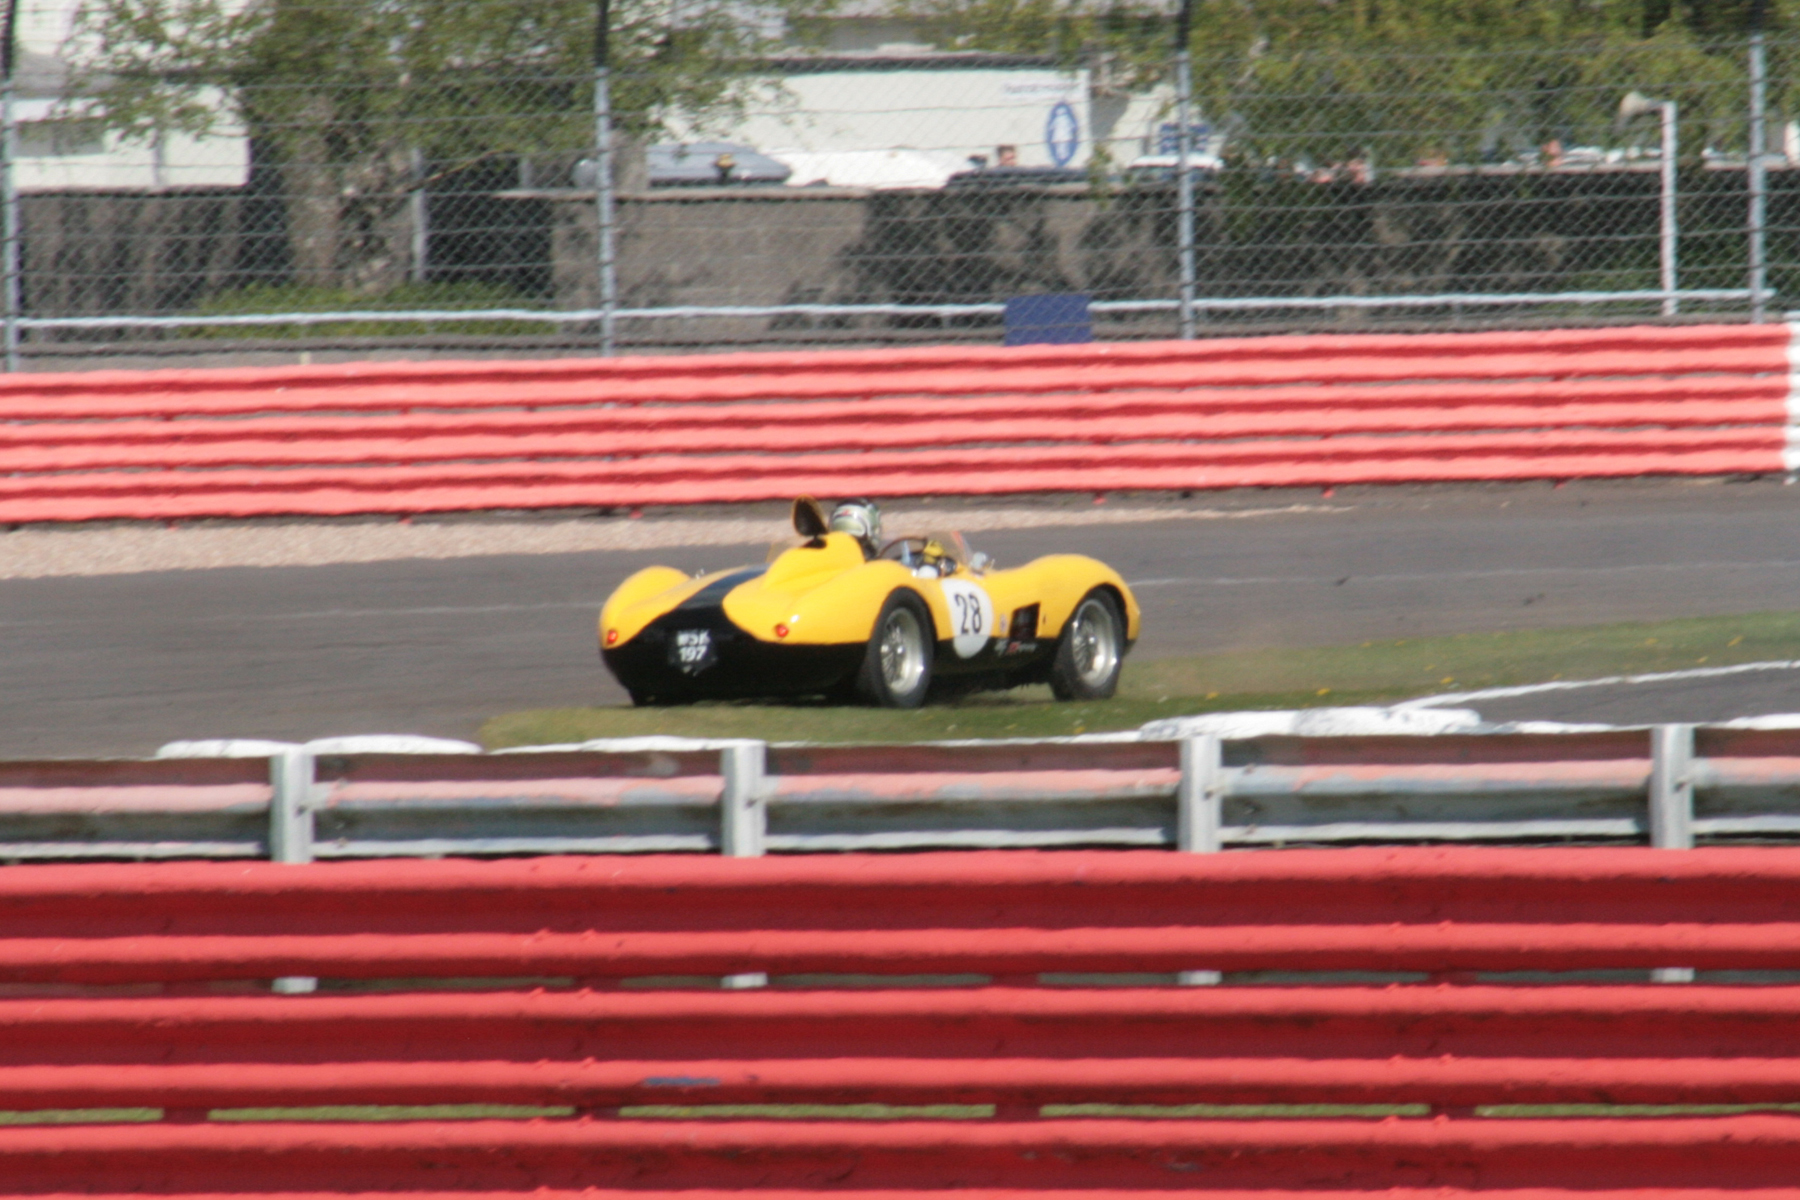 James Cottingham off in Brooklands. During the course of his gyration the fuel filler cap popped up and gave the Ferrari a bit of extra rear end downforce! Photo taken from a long way away  - well that's my excuse anyway                                            Photo - John Turner